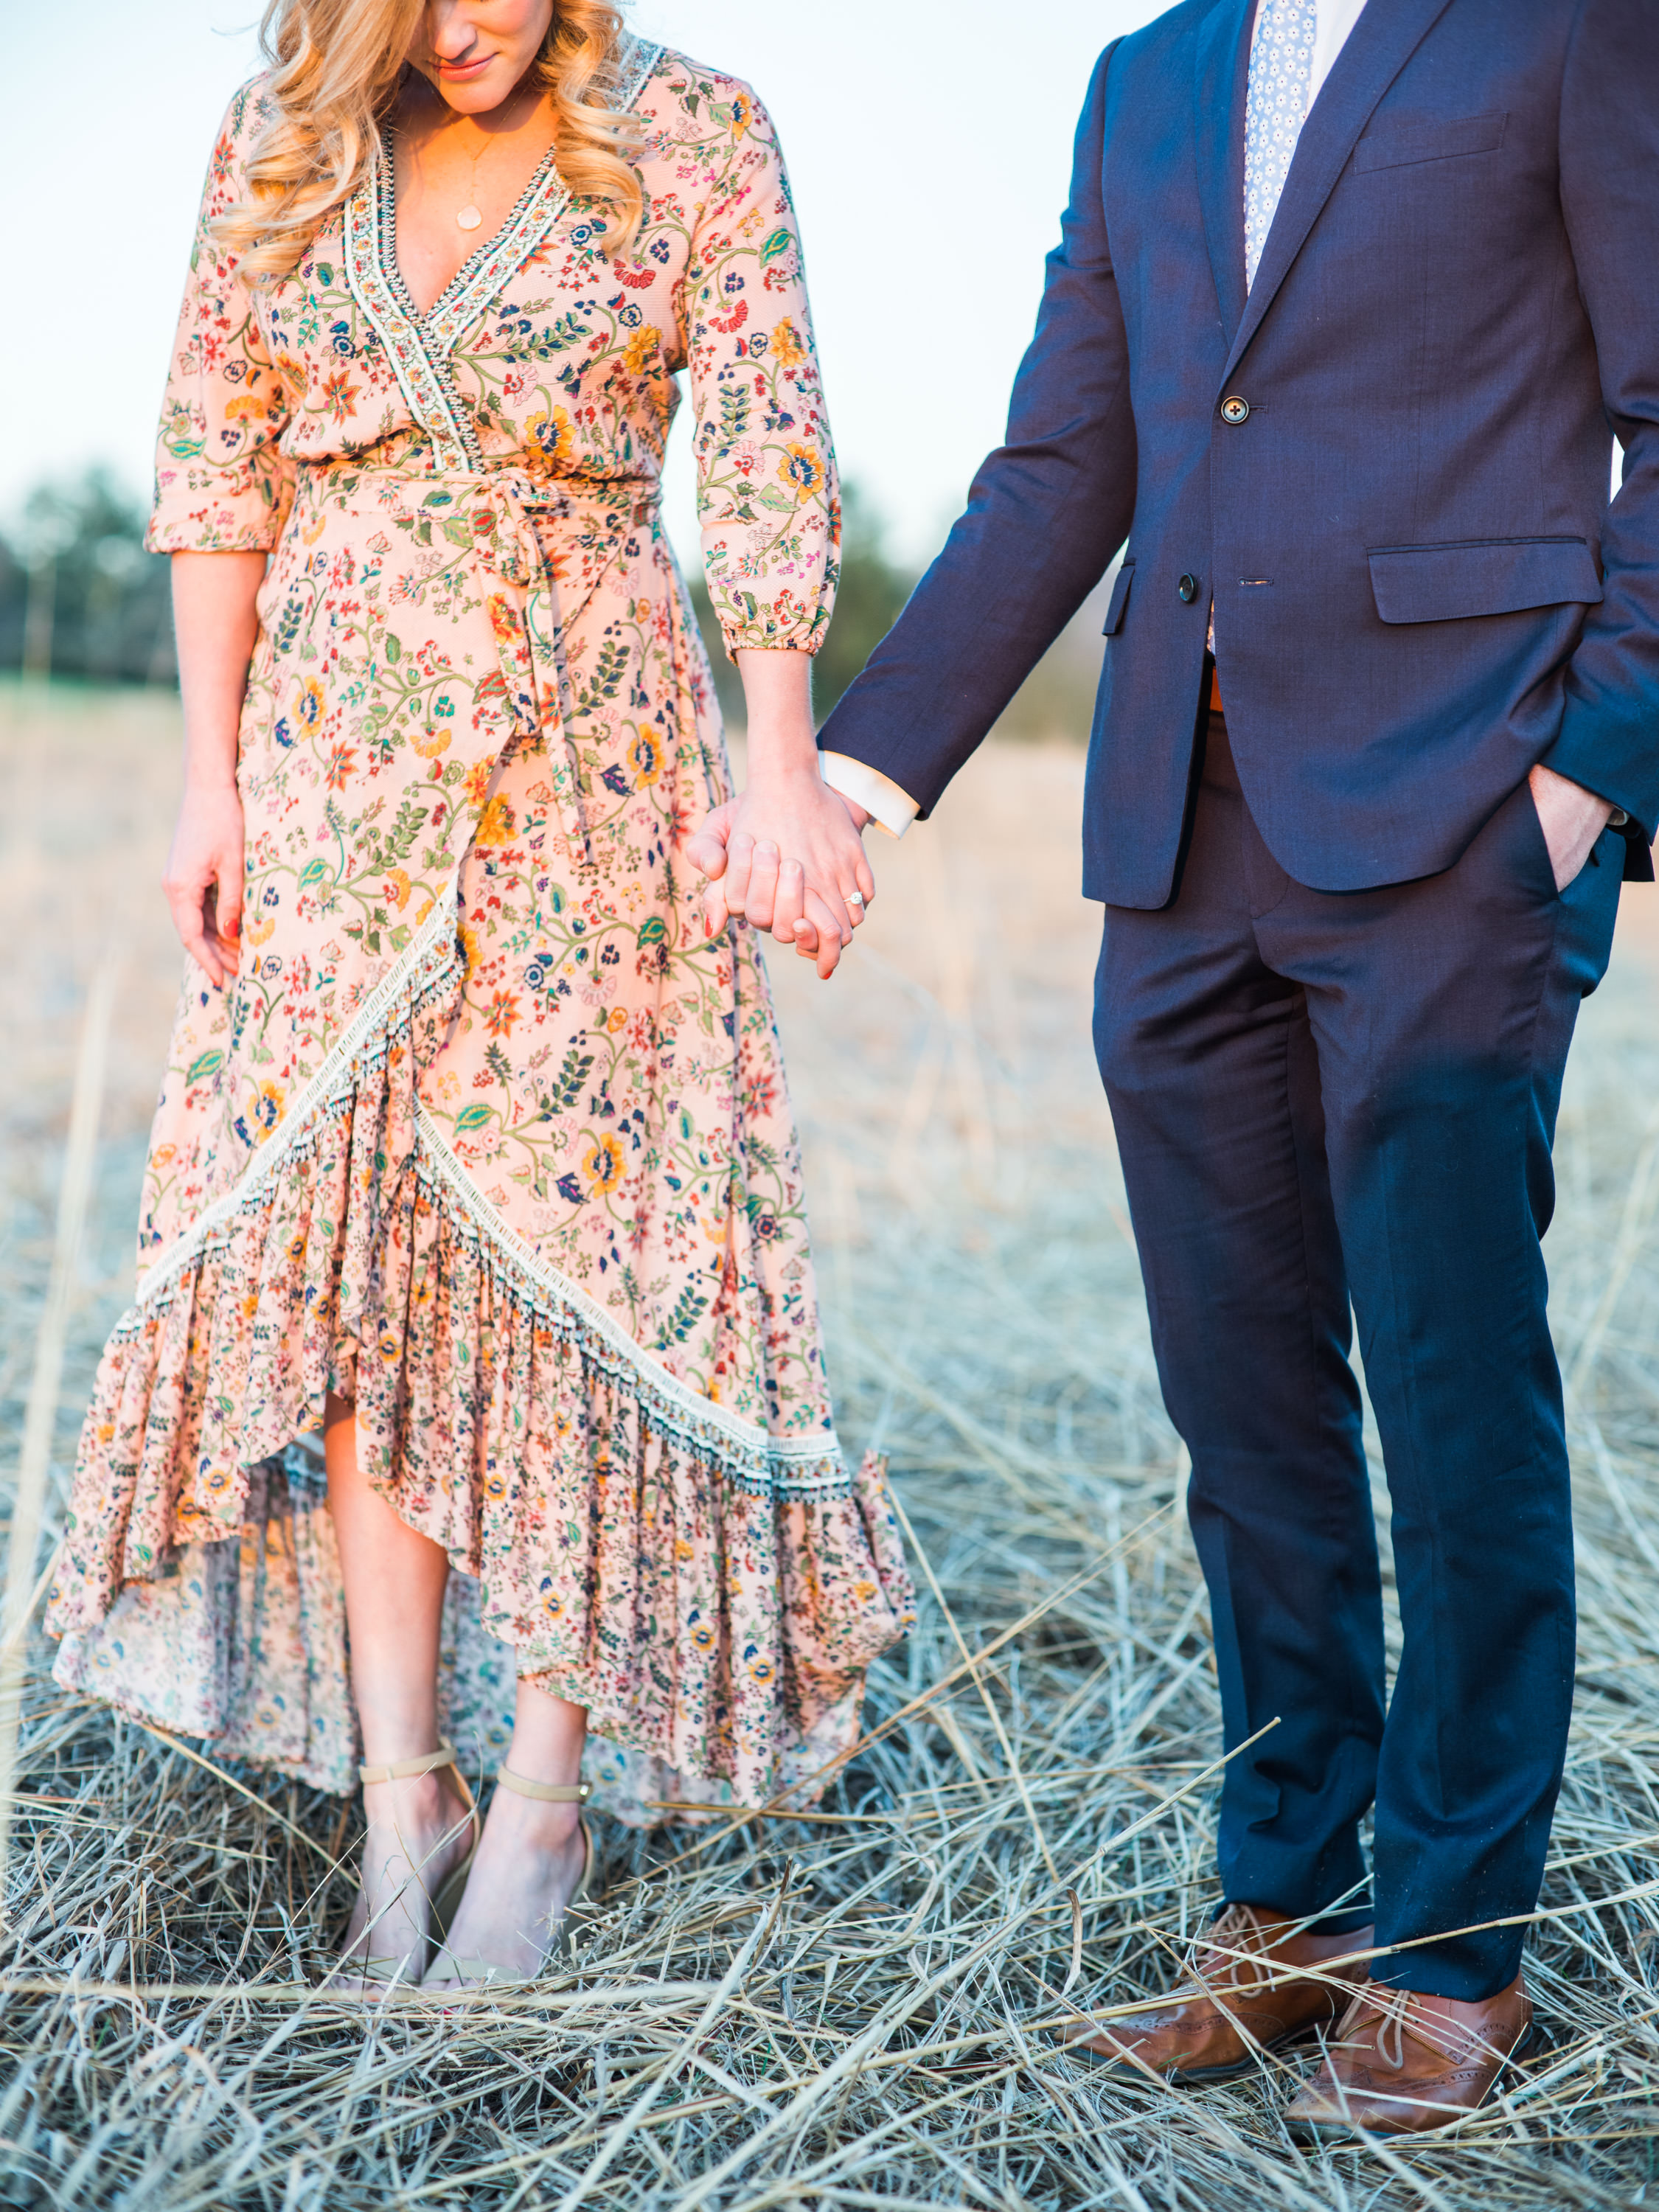 Benny & Sarah Engagement Session at Bernheim Arboretum (Web Use Only)-62.jpg